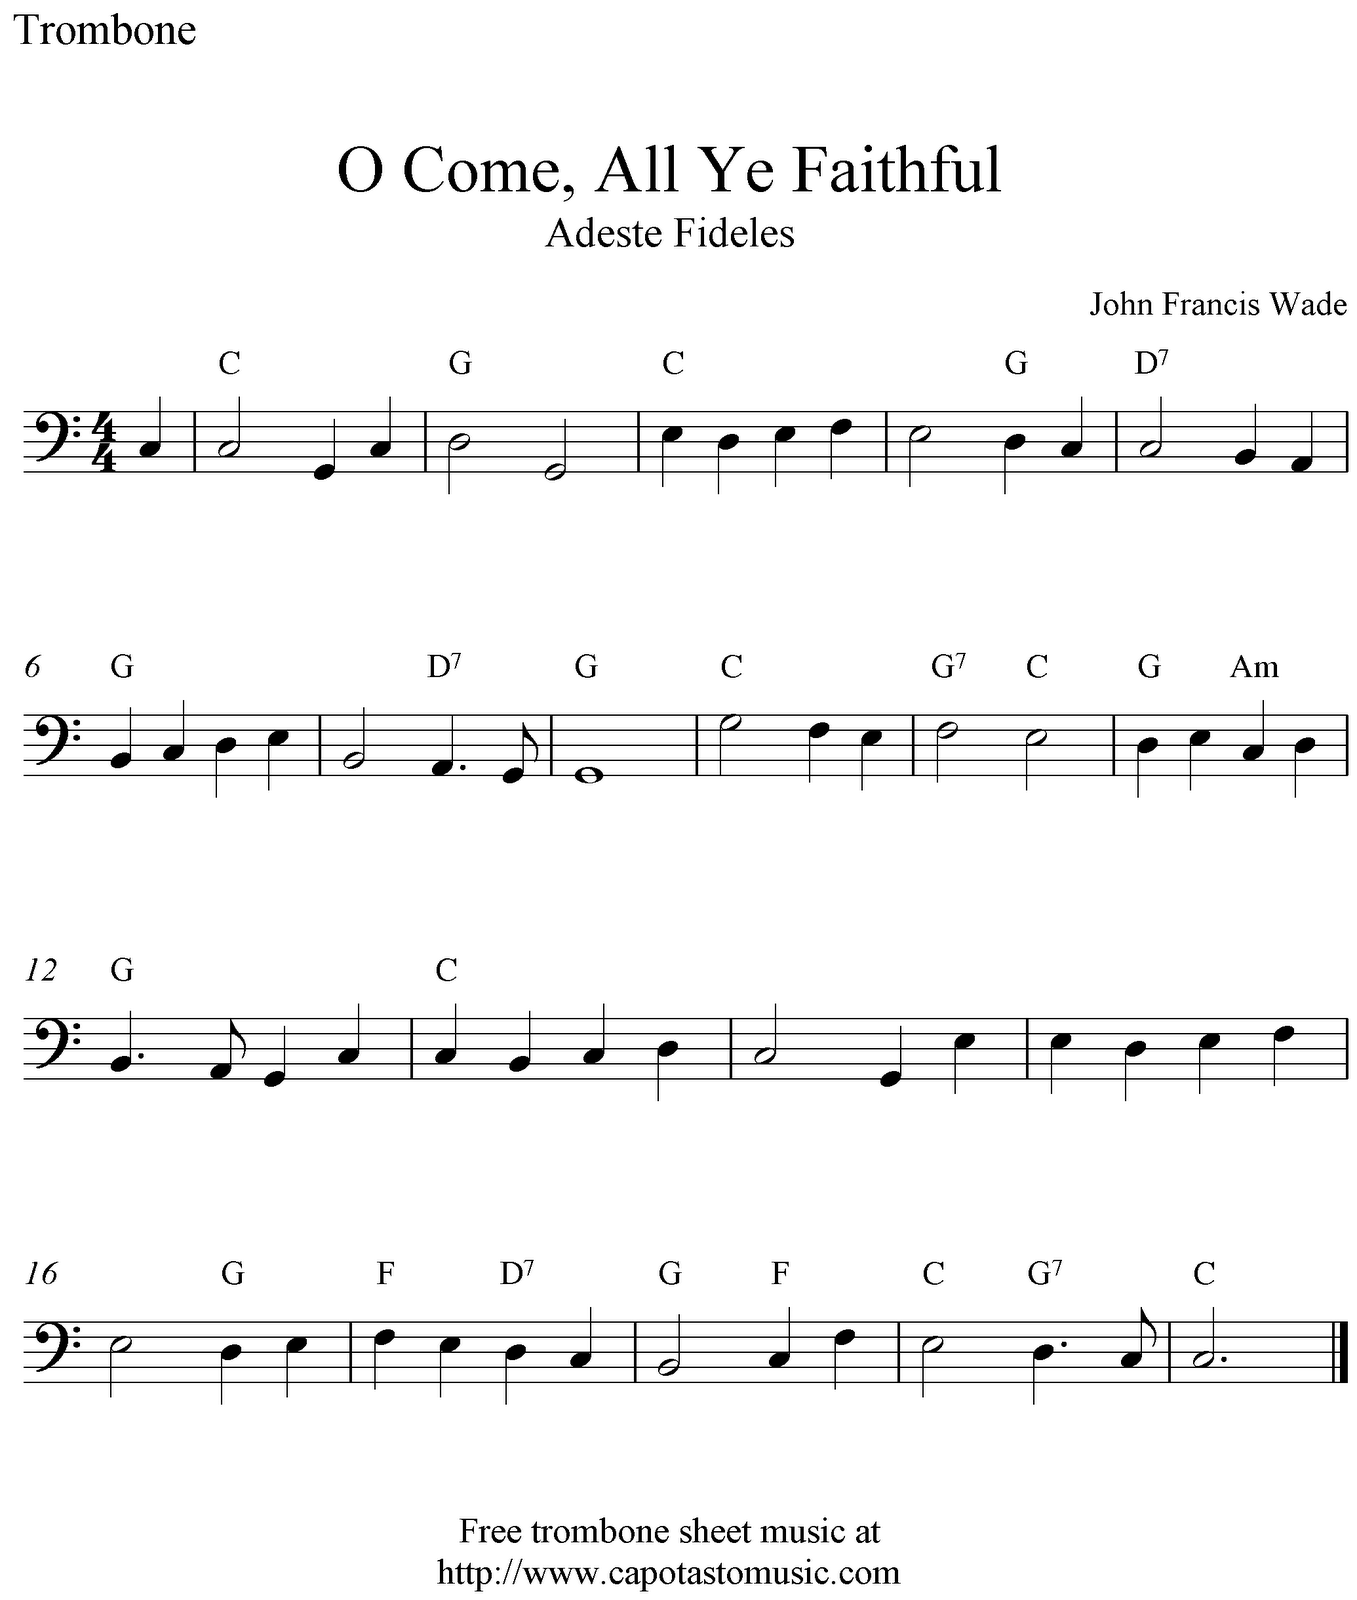 O Come, All Ye Faithful (Adeste Fideles), free Christmas trombone sheet music notes